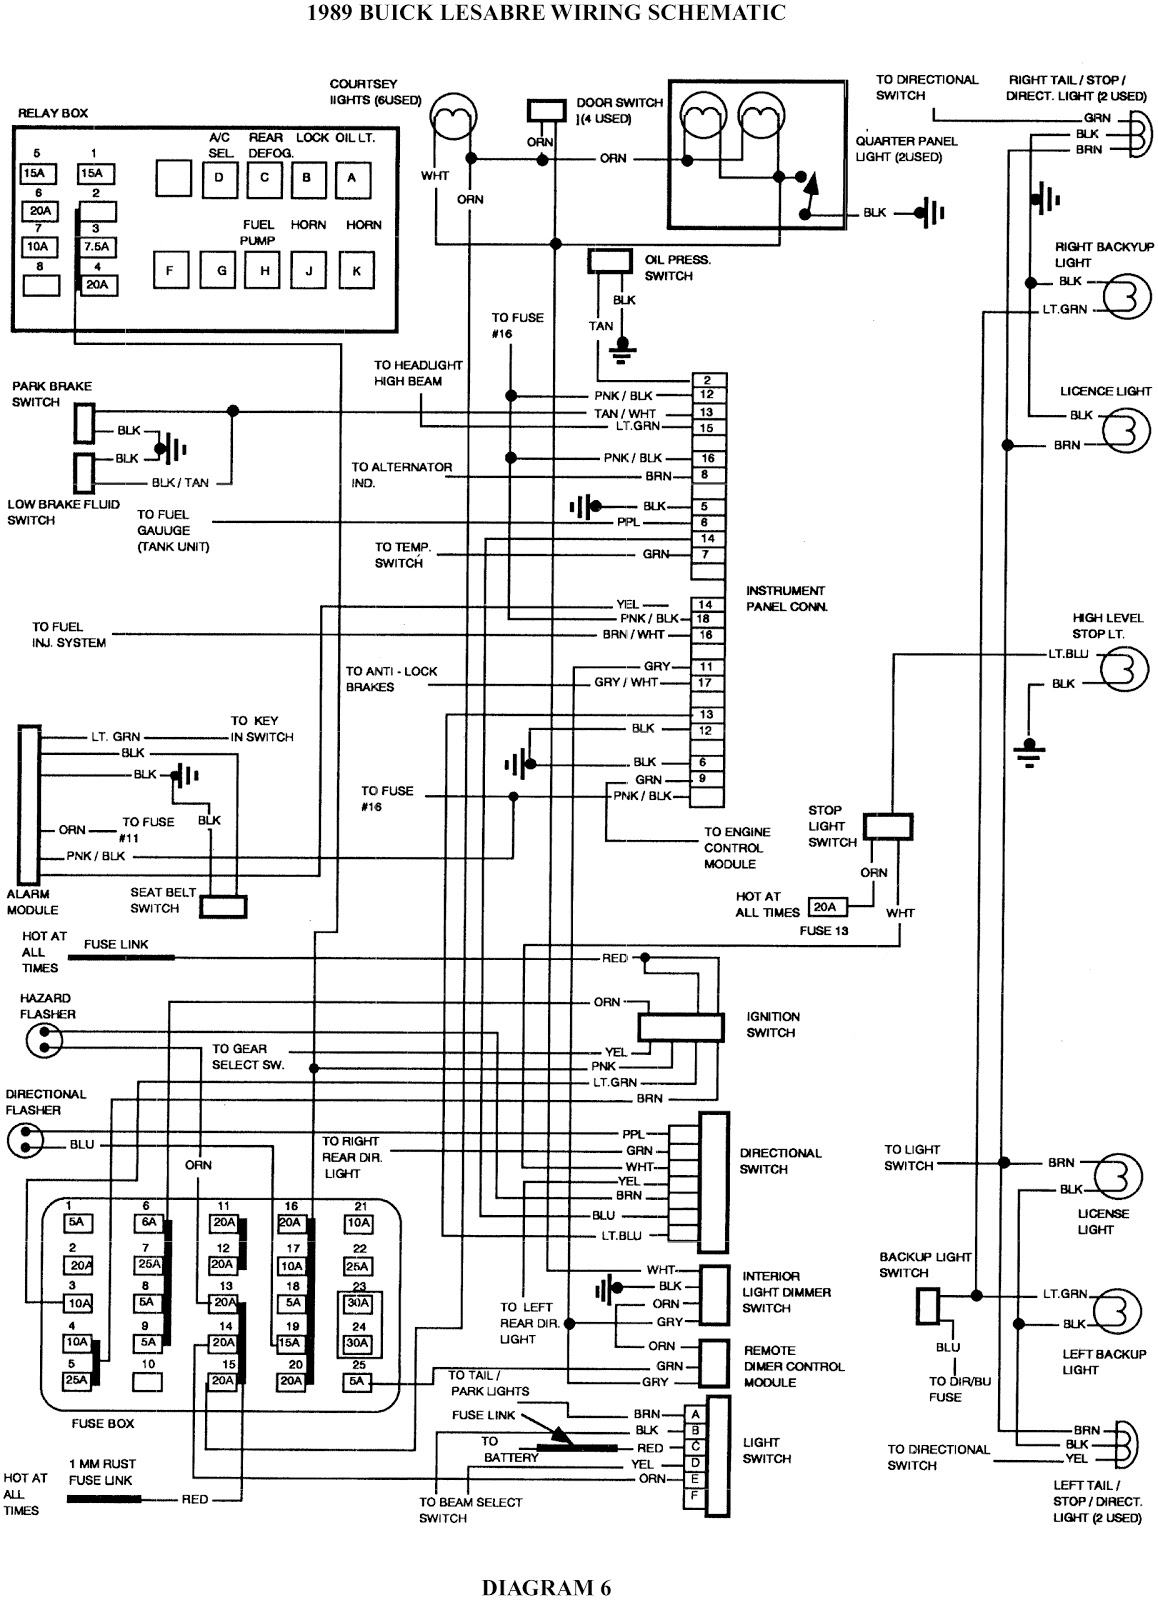 1989 buick lesabre wiring schematic schematic wiring 2003 jetta fuse panel diagram 1996 vw jetta fuse panel diagram